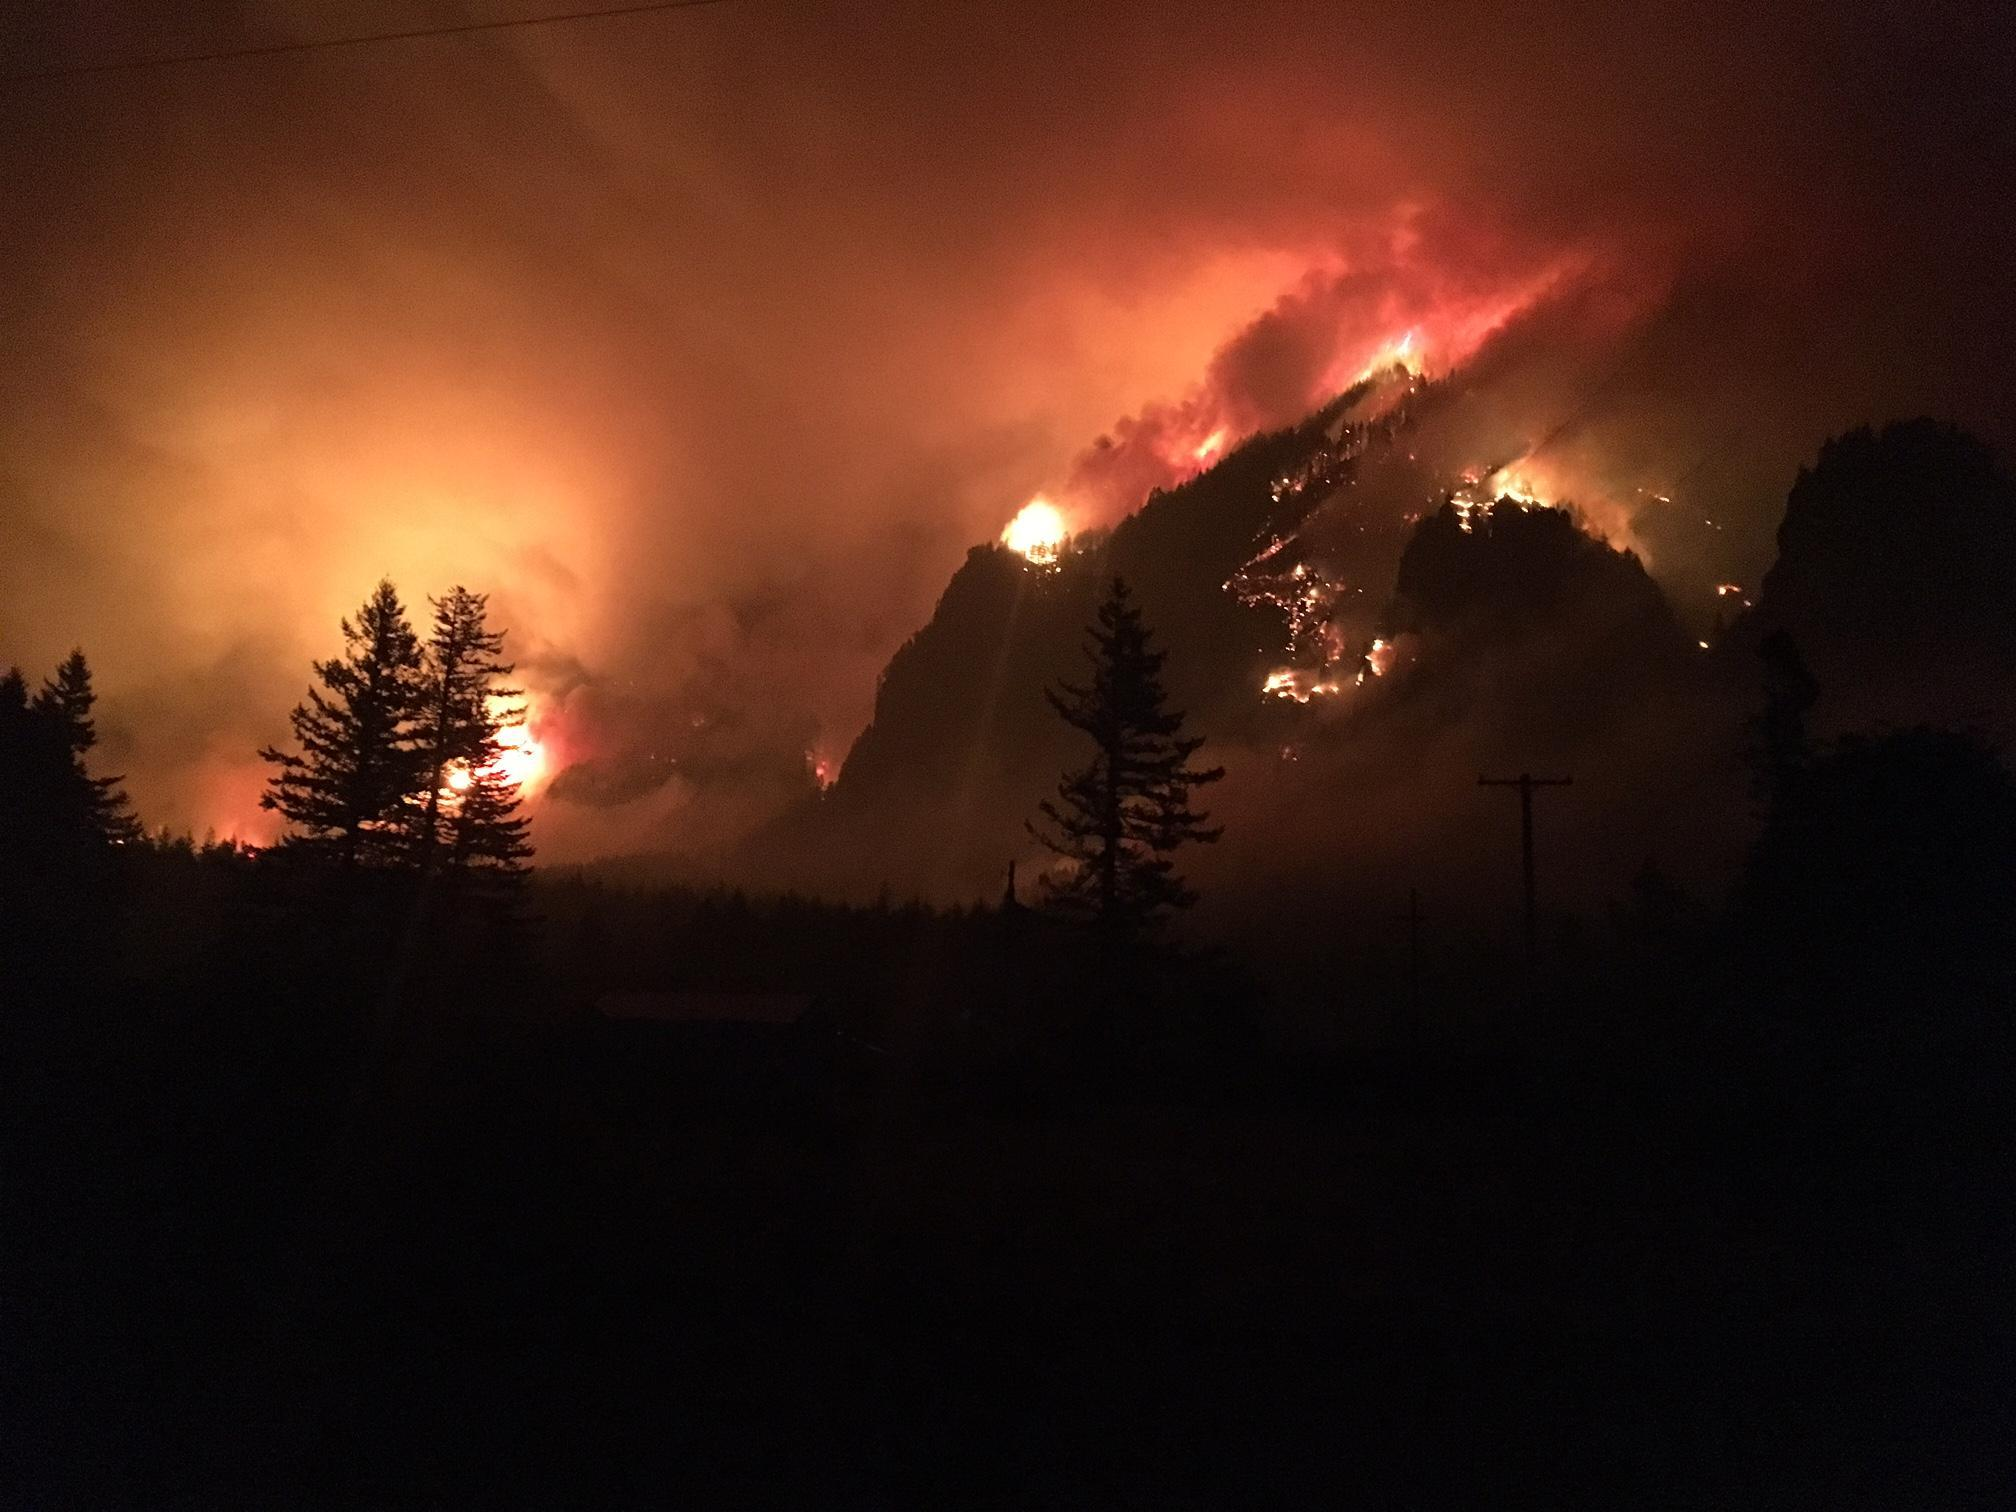 The Eagle Creek Fire burns in the Columbia River Gorge. (Photo: Inciweb)